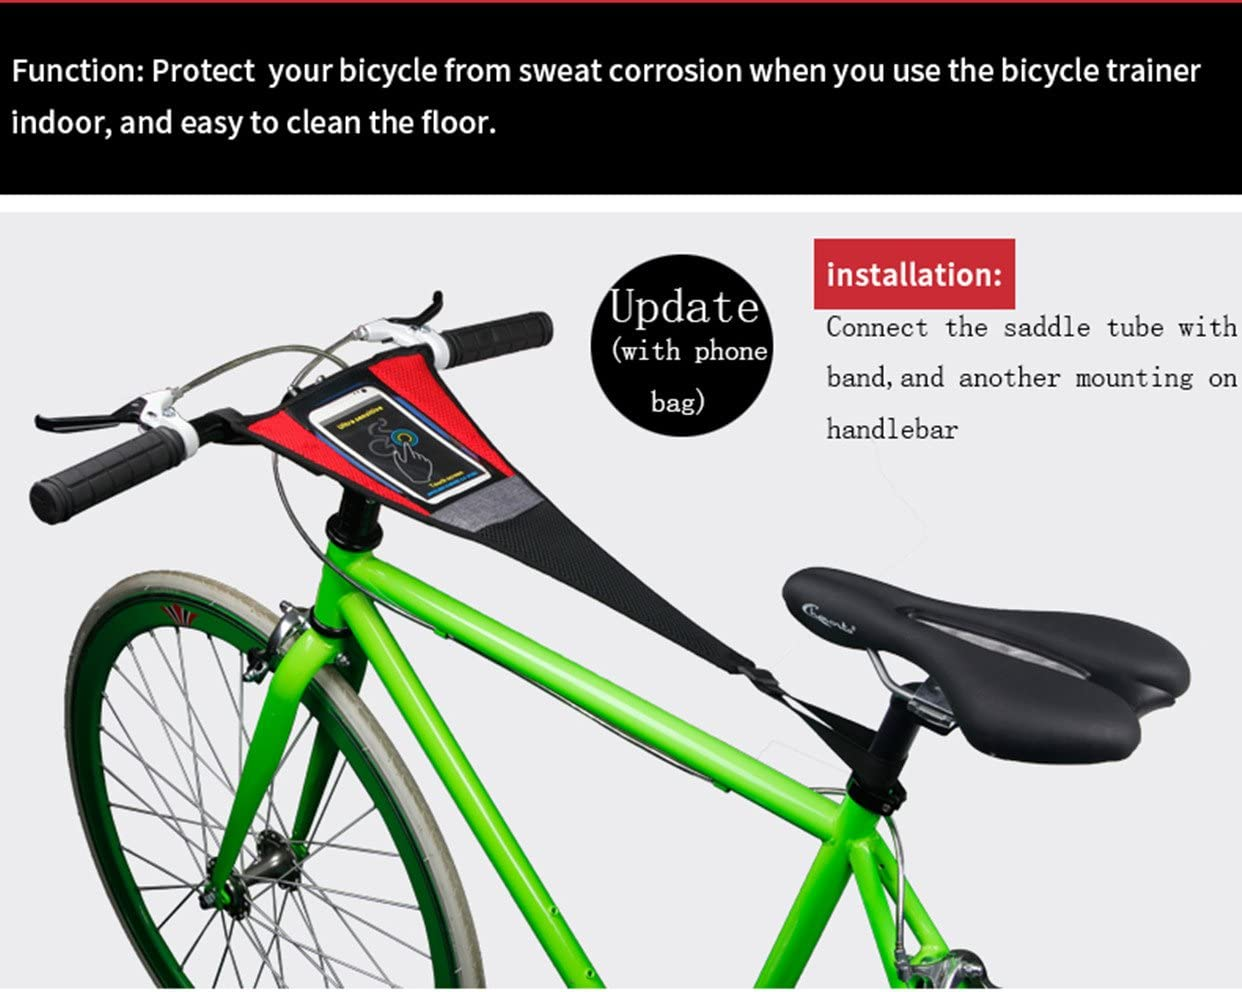 NEWCOMDIGI 1 Pack Bike Frame Sweat Guard Sweat Absorbs Prevent Bicycle from Corrosion for Bicycle Trainer Indoor Cycling Training